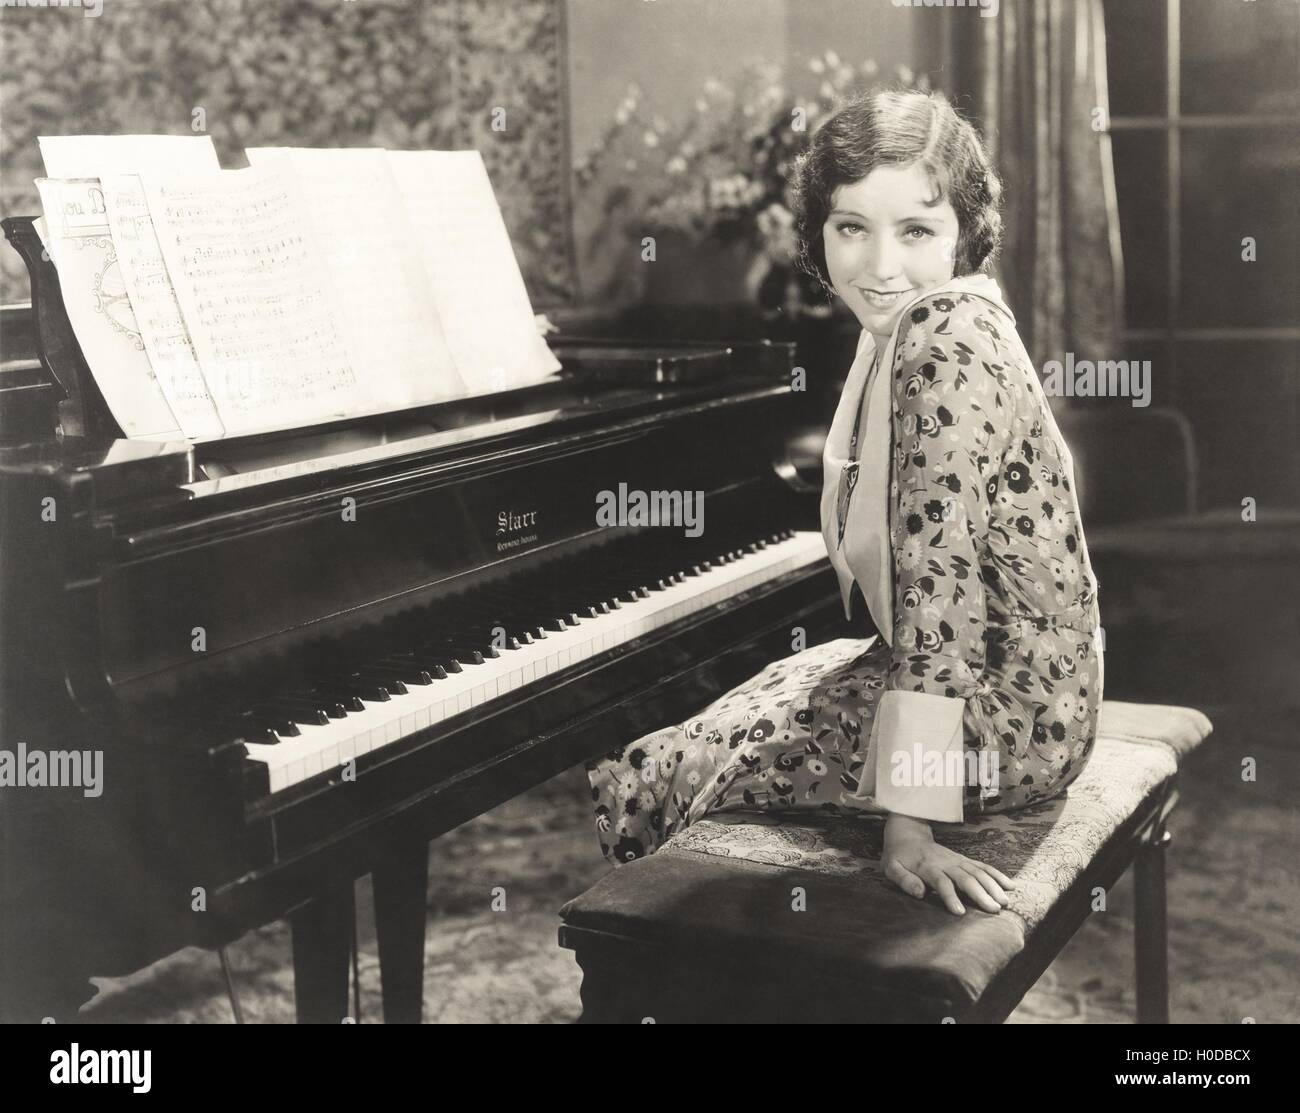 Smiling woman sitting by piano at home - Stock Image